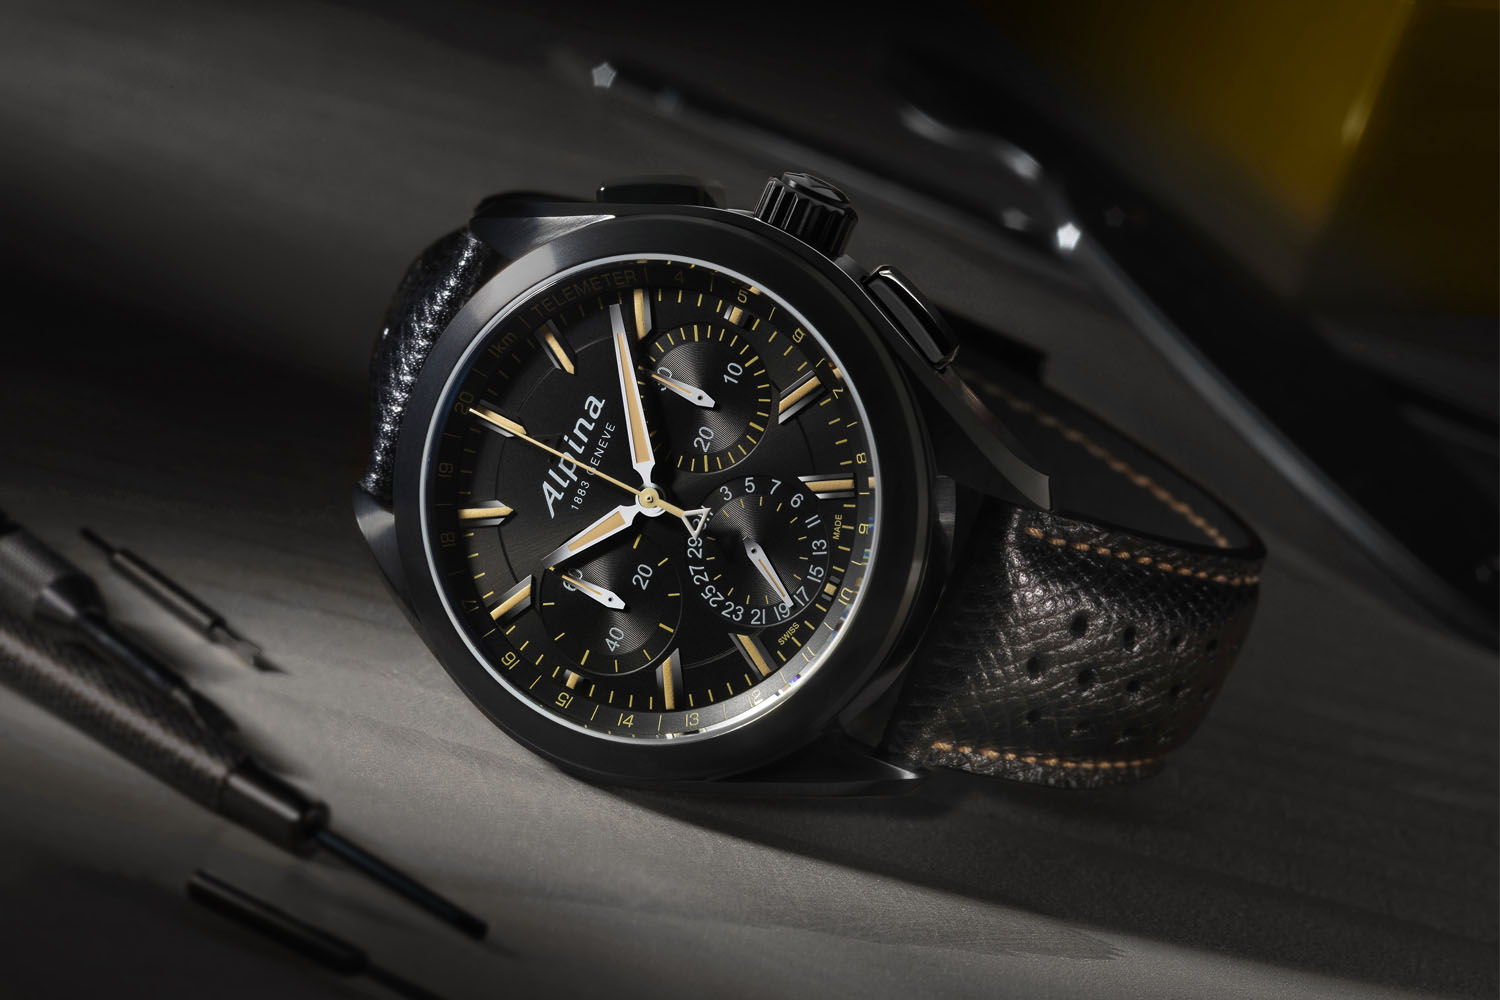 Alpina-Watches-Alpiner-4-Manufacture-Flyback-Chronograph-Full-Black-Calibre-AL-760-3